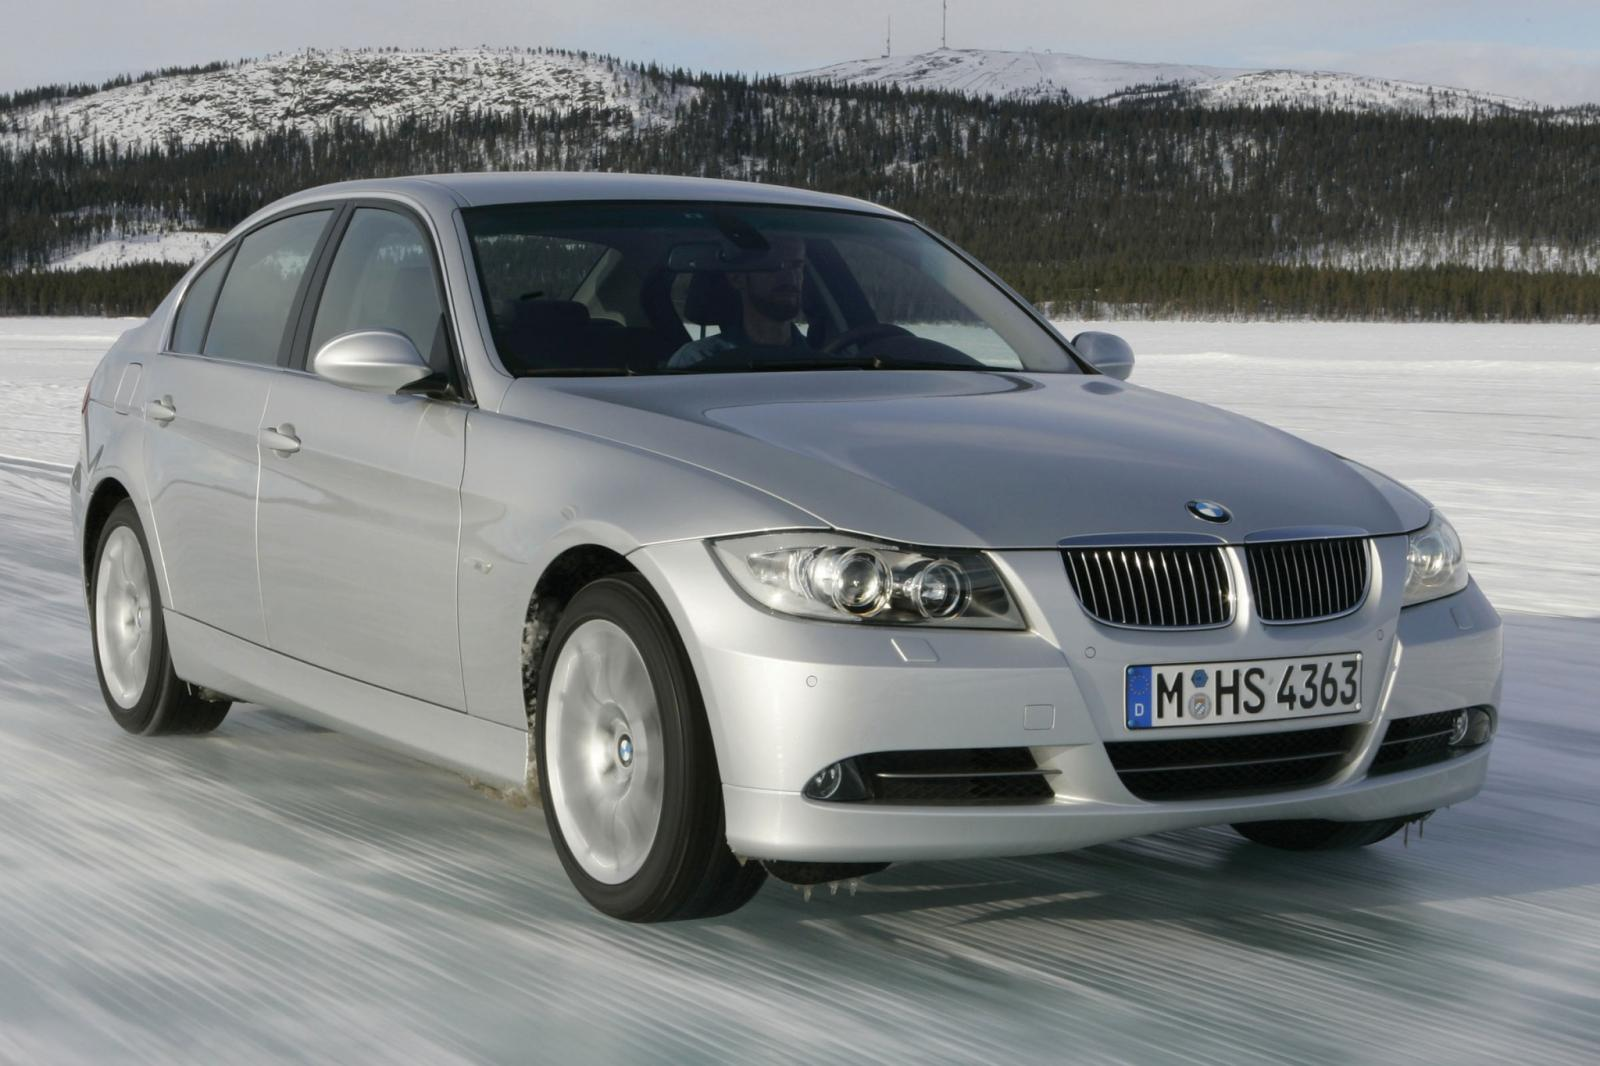 2007 Bmw 3 Series Information And Photos Zomb Drive